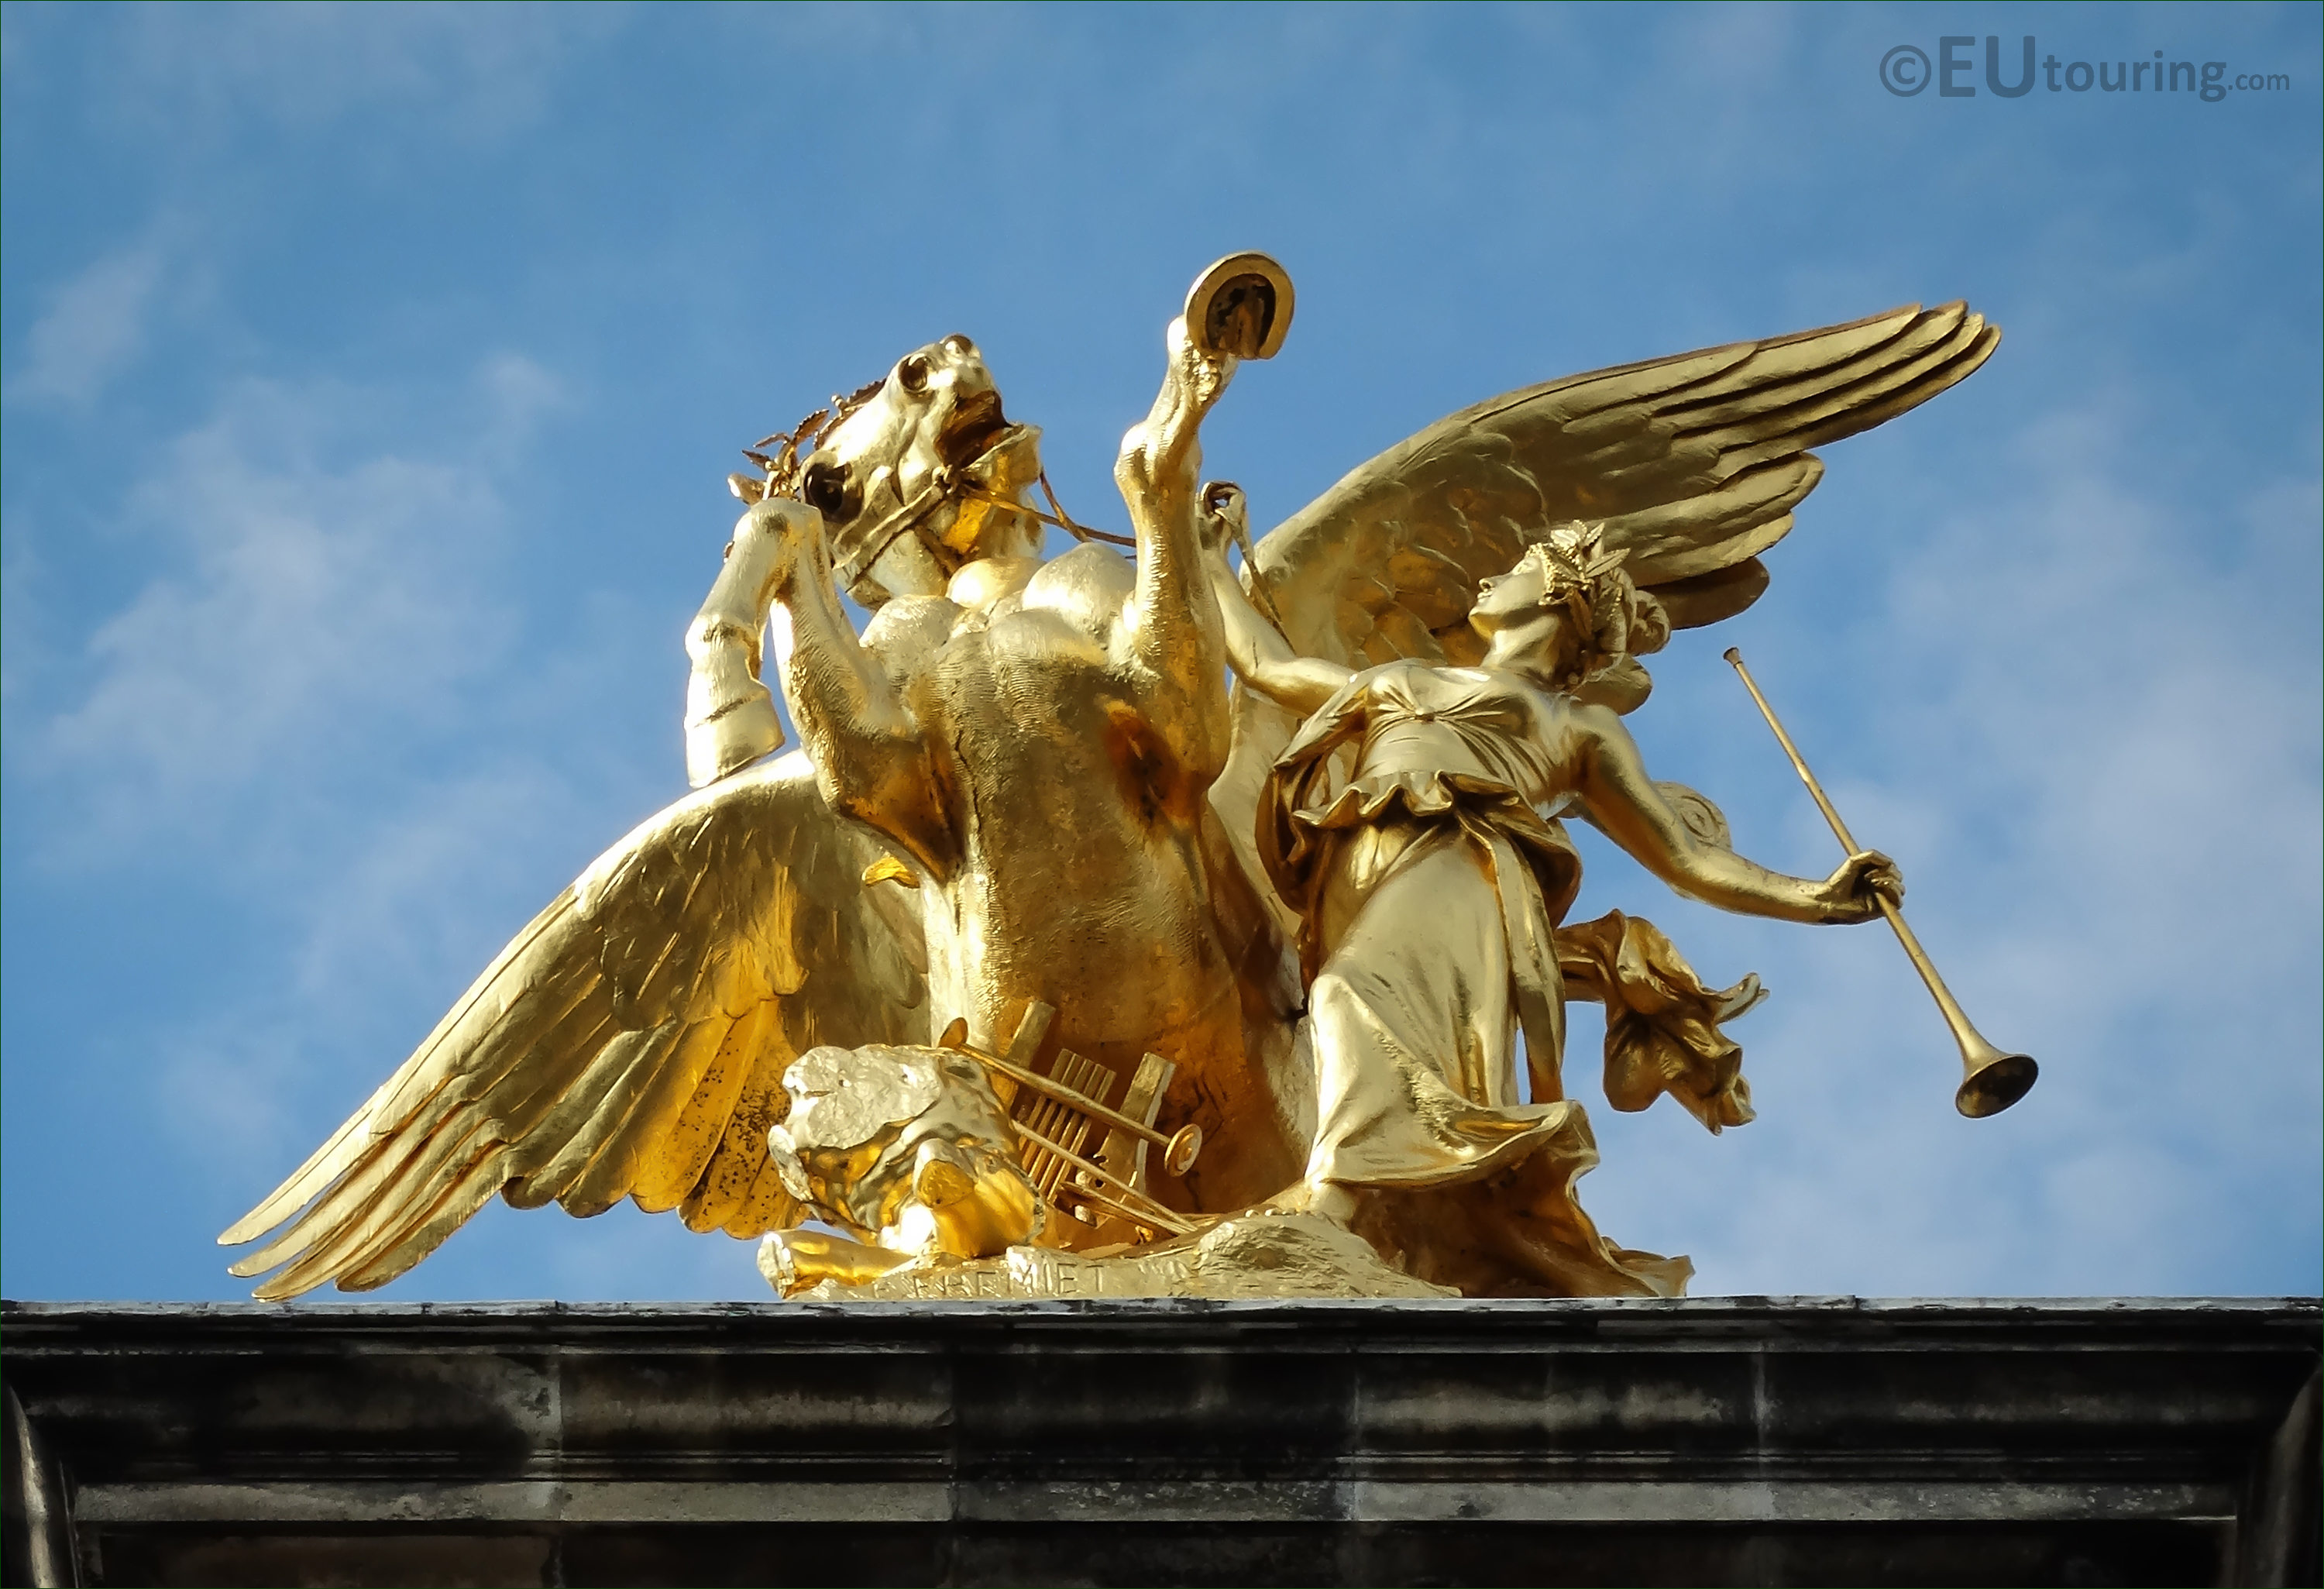 photos of renommee des arts statue on pont alexandre iii